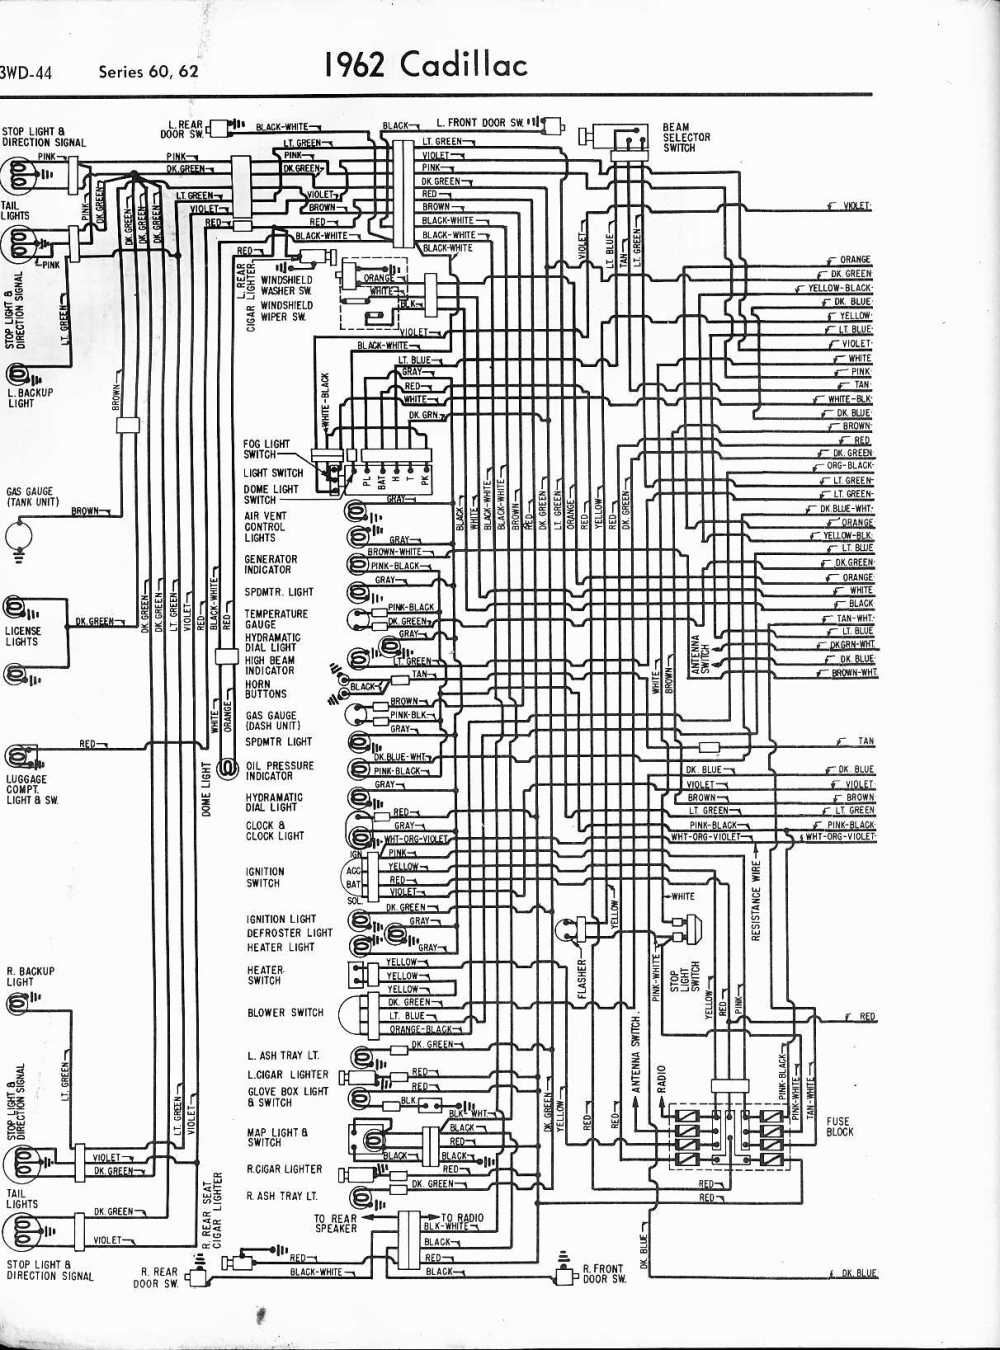 medium resolution of 1962 cadillac wiring diagram wiring diagram technic 1962 cadillac 390 engine diagram